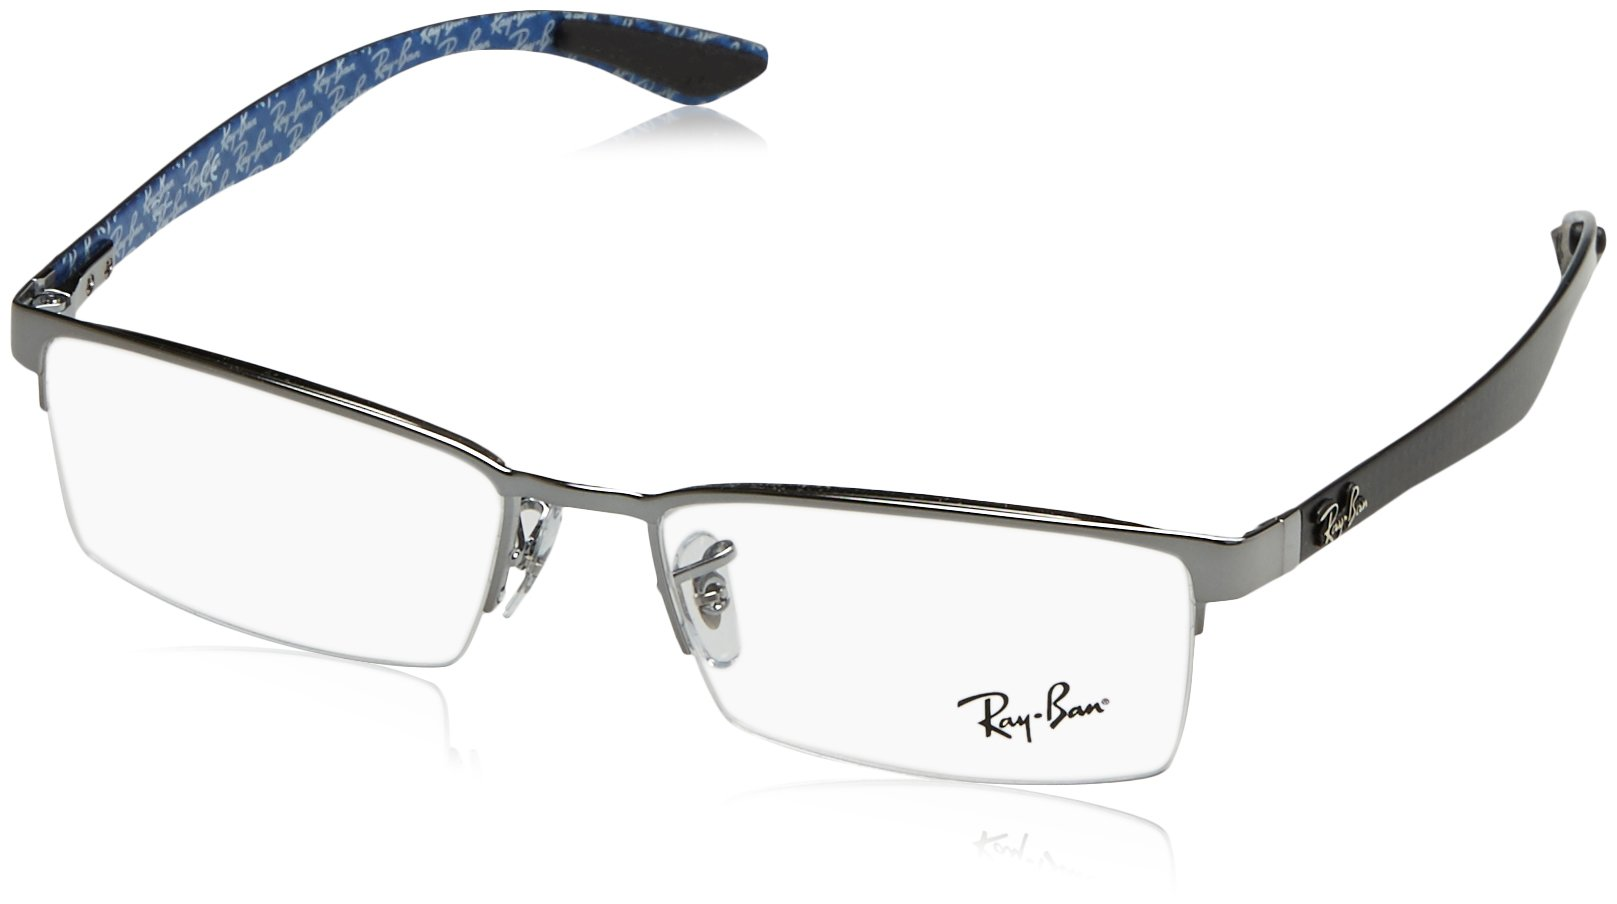 Ray-Ban Men's 0rx8412 No Polarization Rectangular Prescription Eyewear Frame, Gunmetal, 54 mm